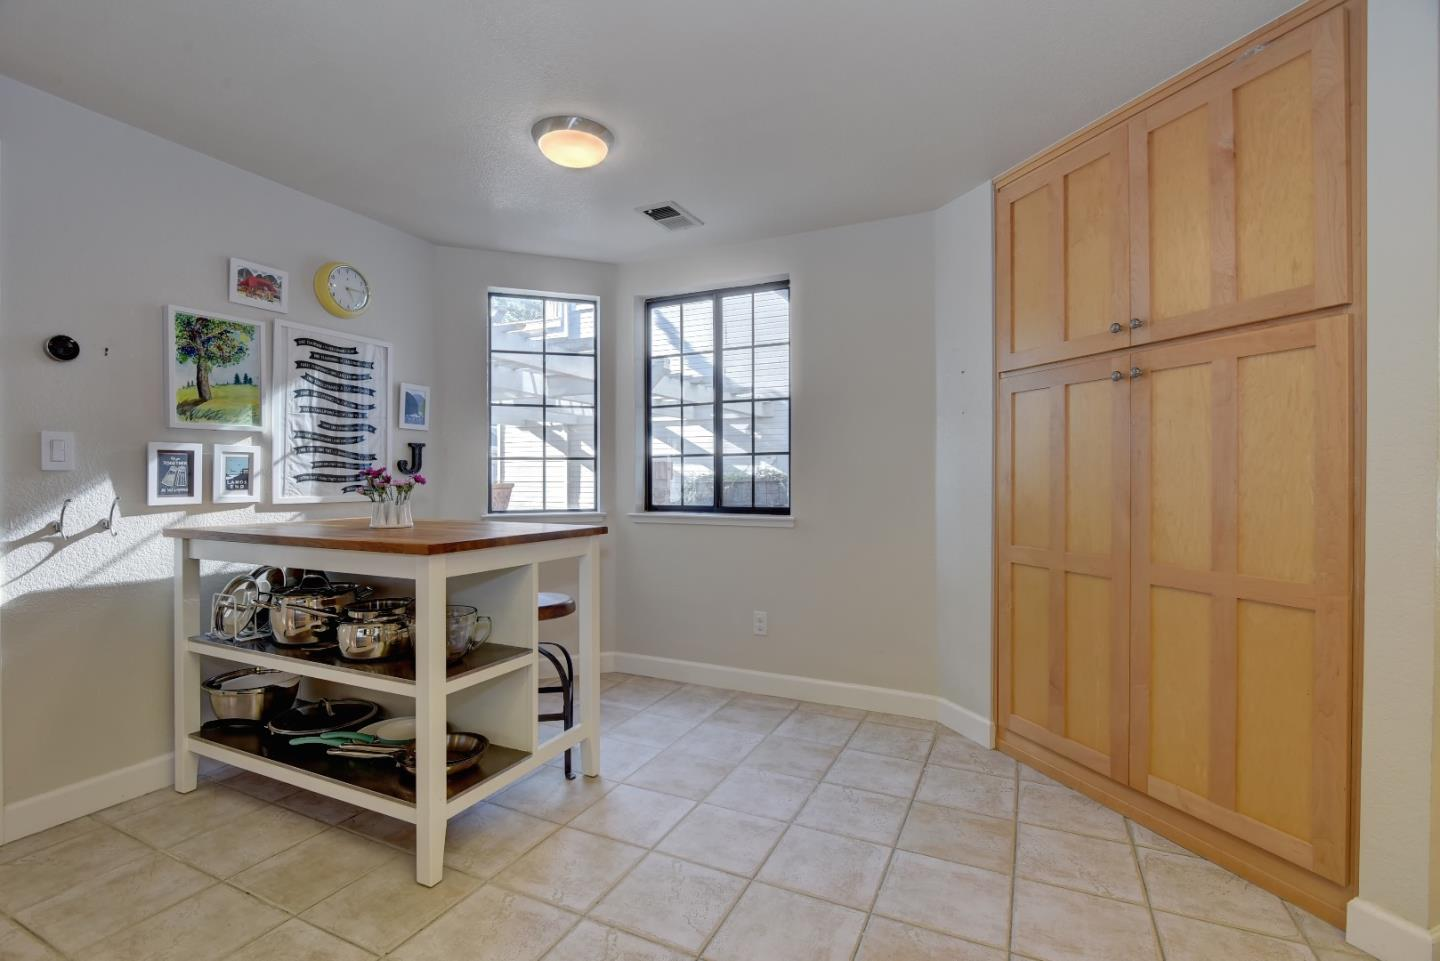 Additional photo for property listing at 439 Mountain Laurel Ct  MOUNTAIN VIEW, CALIFORNIA 94043